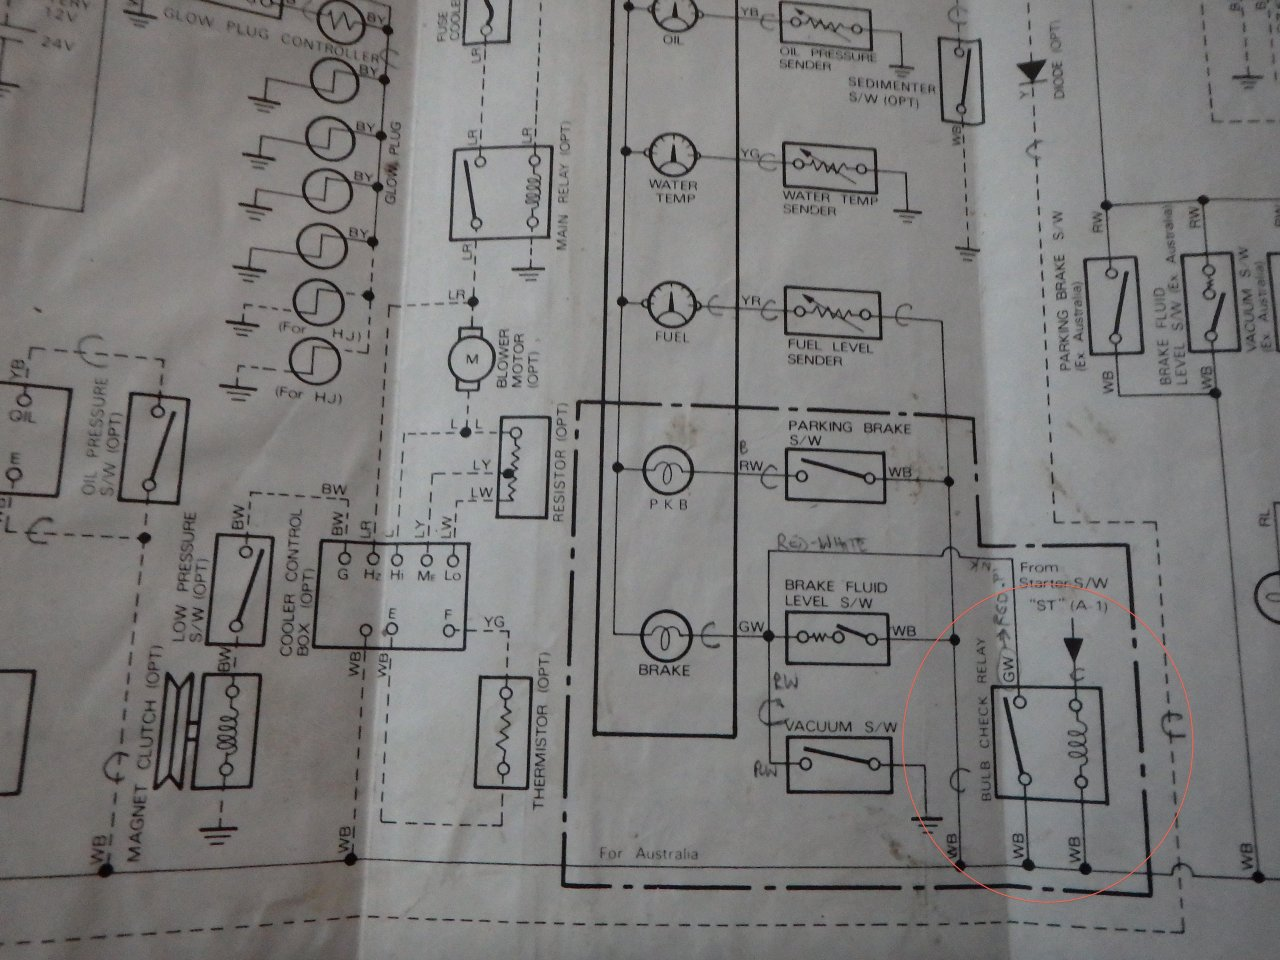 1996 land cruiser wiring diagram 3 way switch 2 lights scissor lift schematic excavator schematics